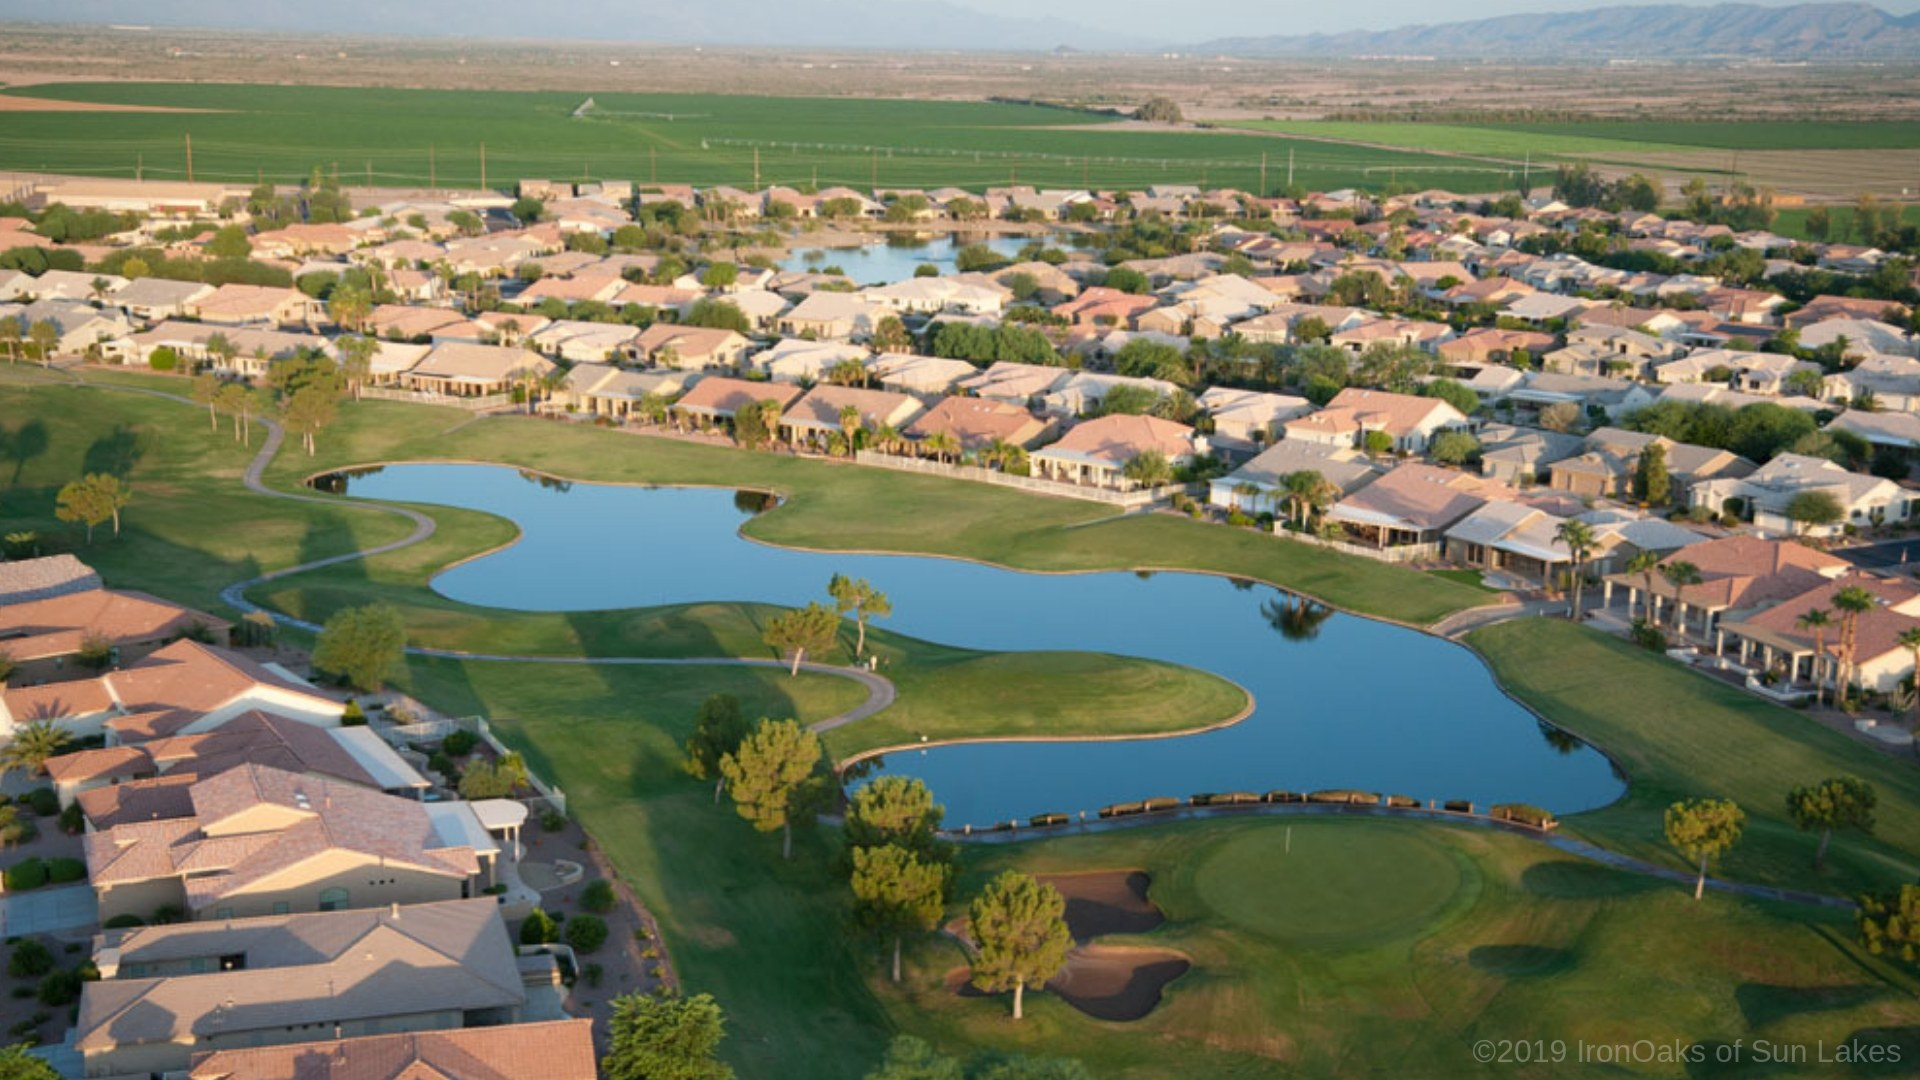 Evening over golf course pond and homes in Sun Lakes, Arizona